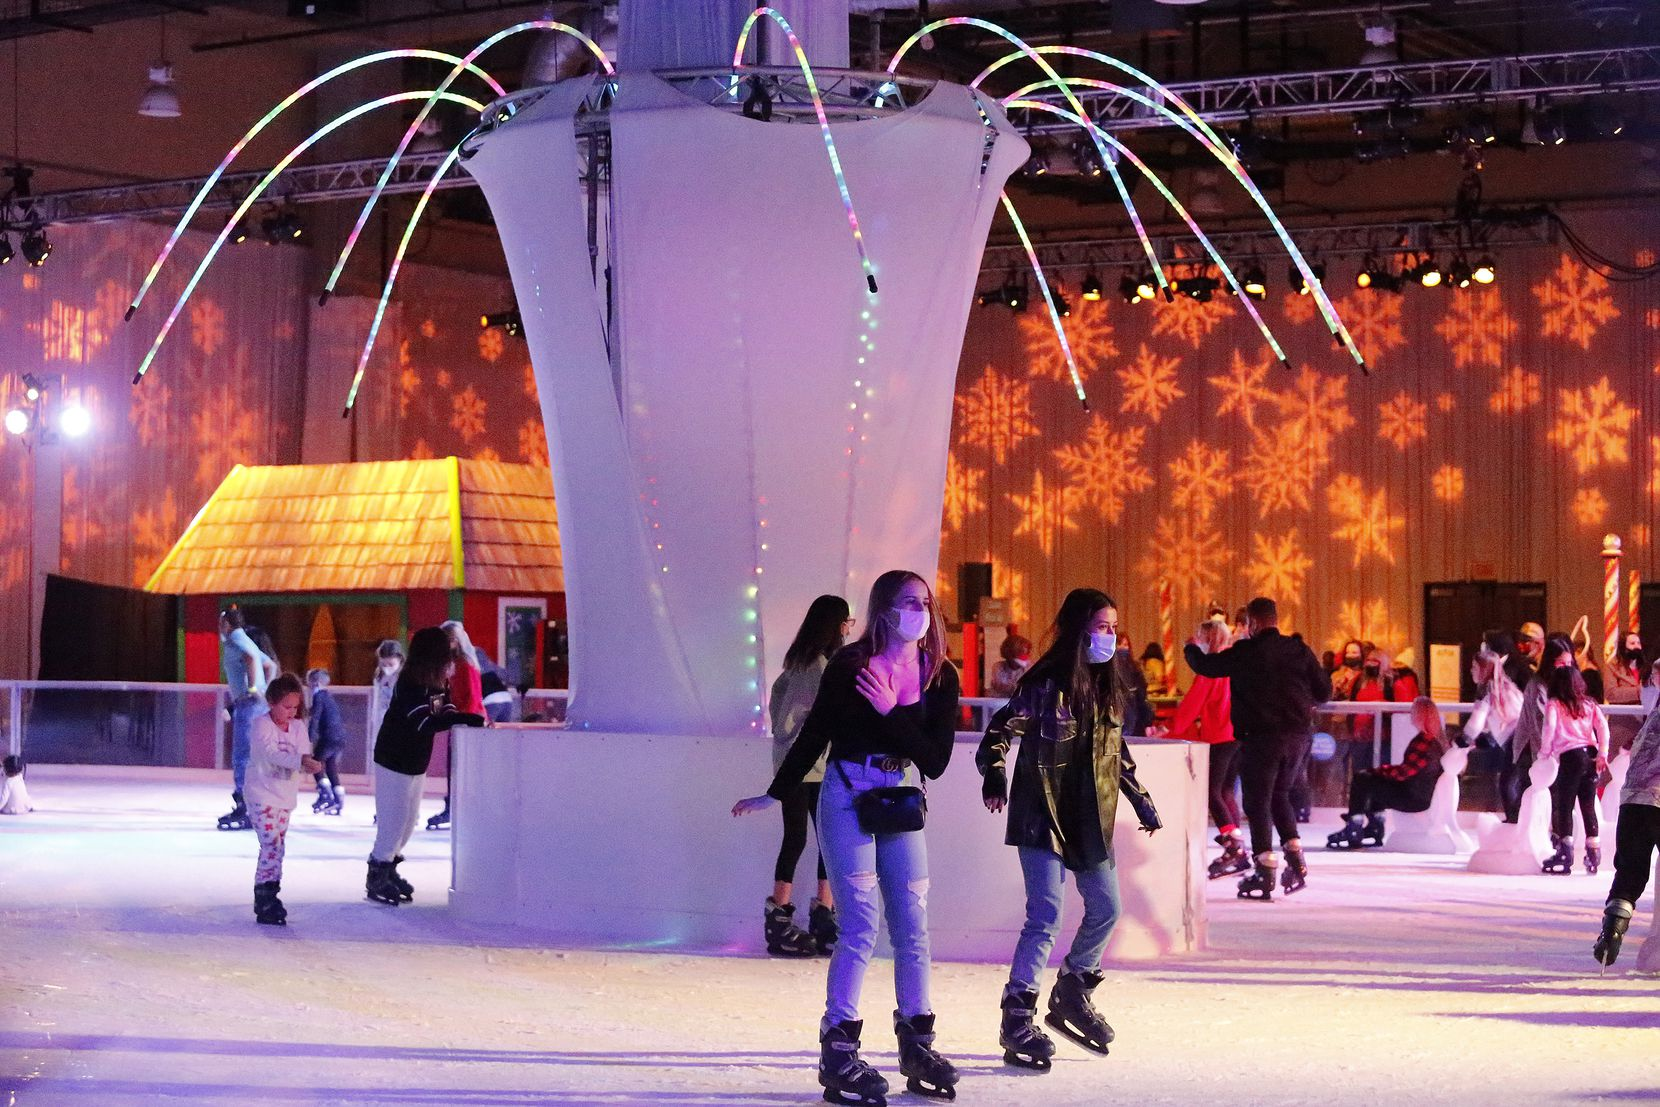 The skating rink moved indoors at 2020's holiday celebration at the Gaylord Texan in Grapevine.